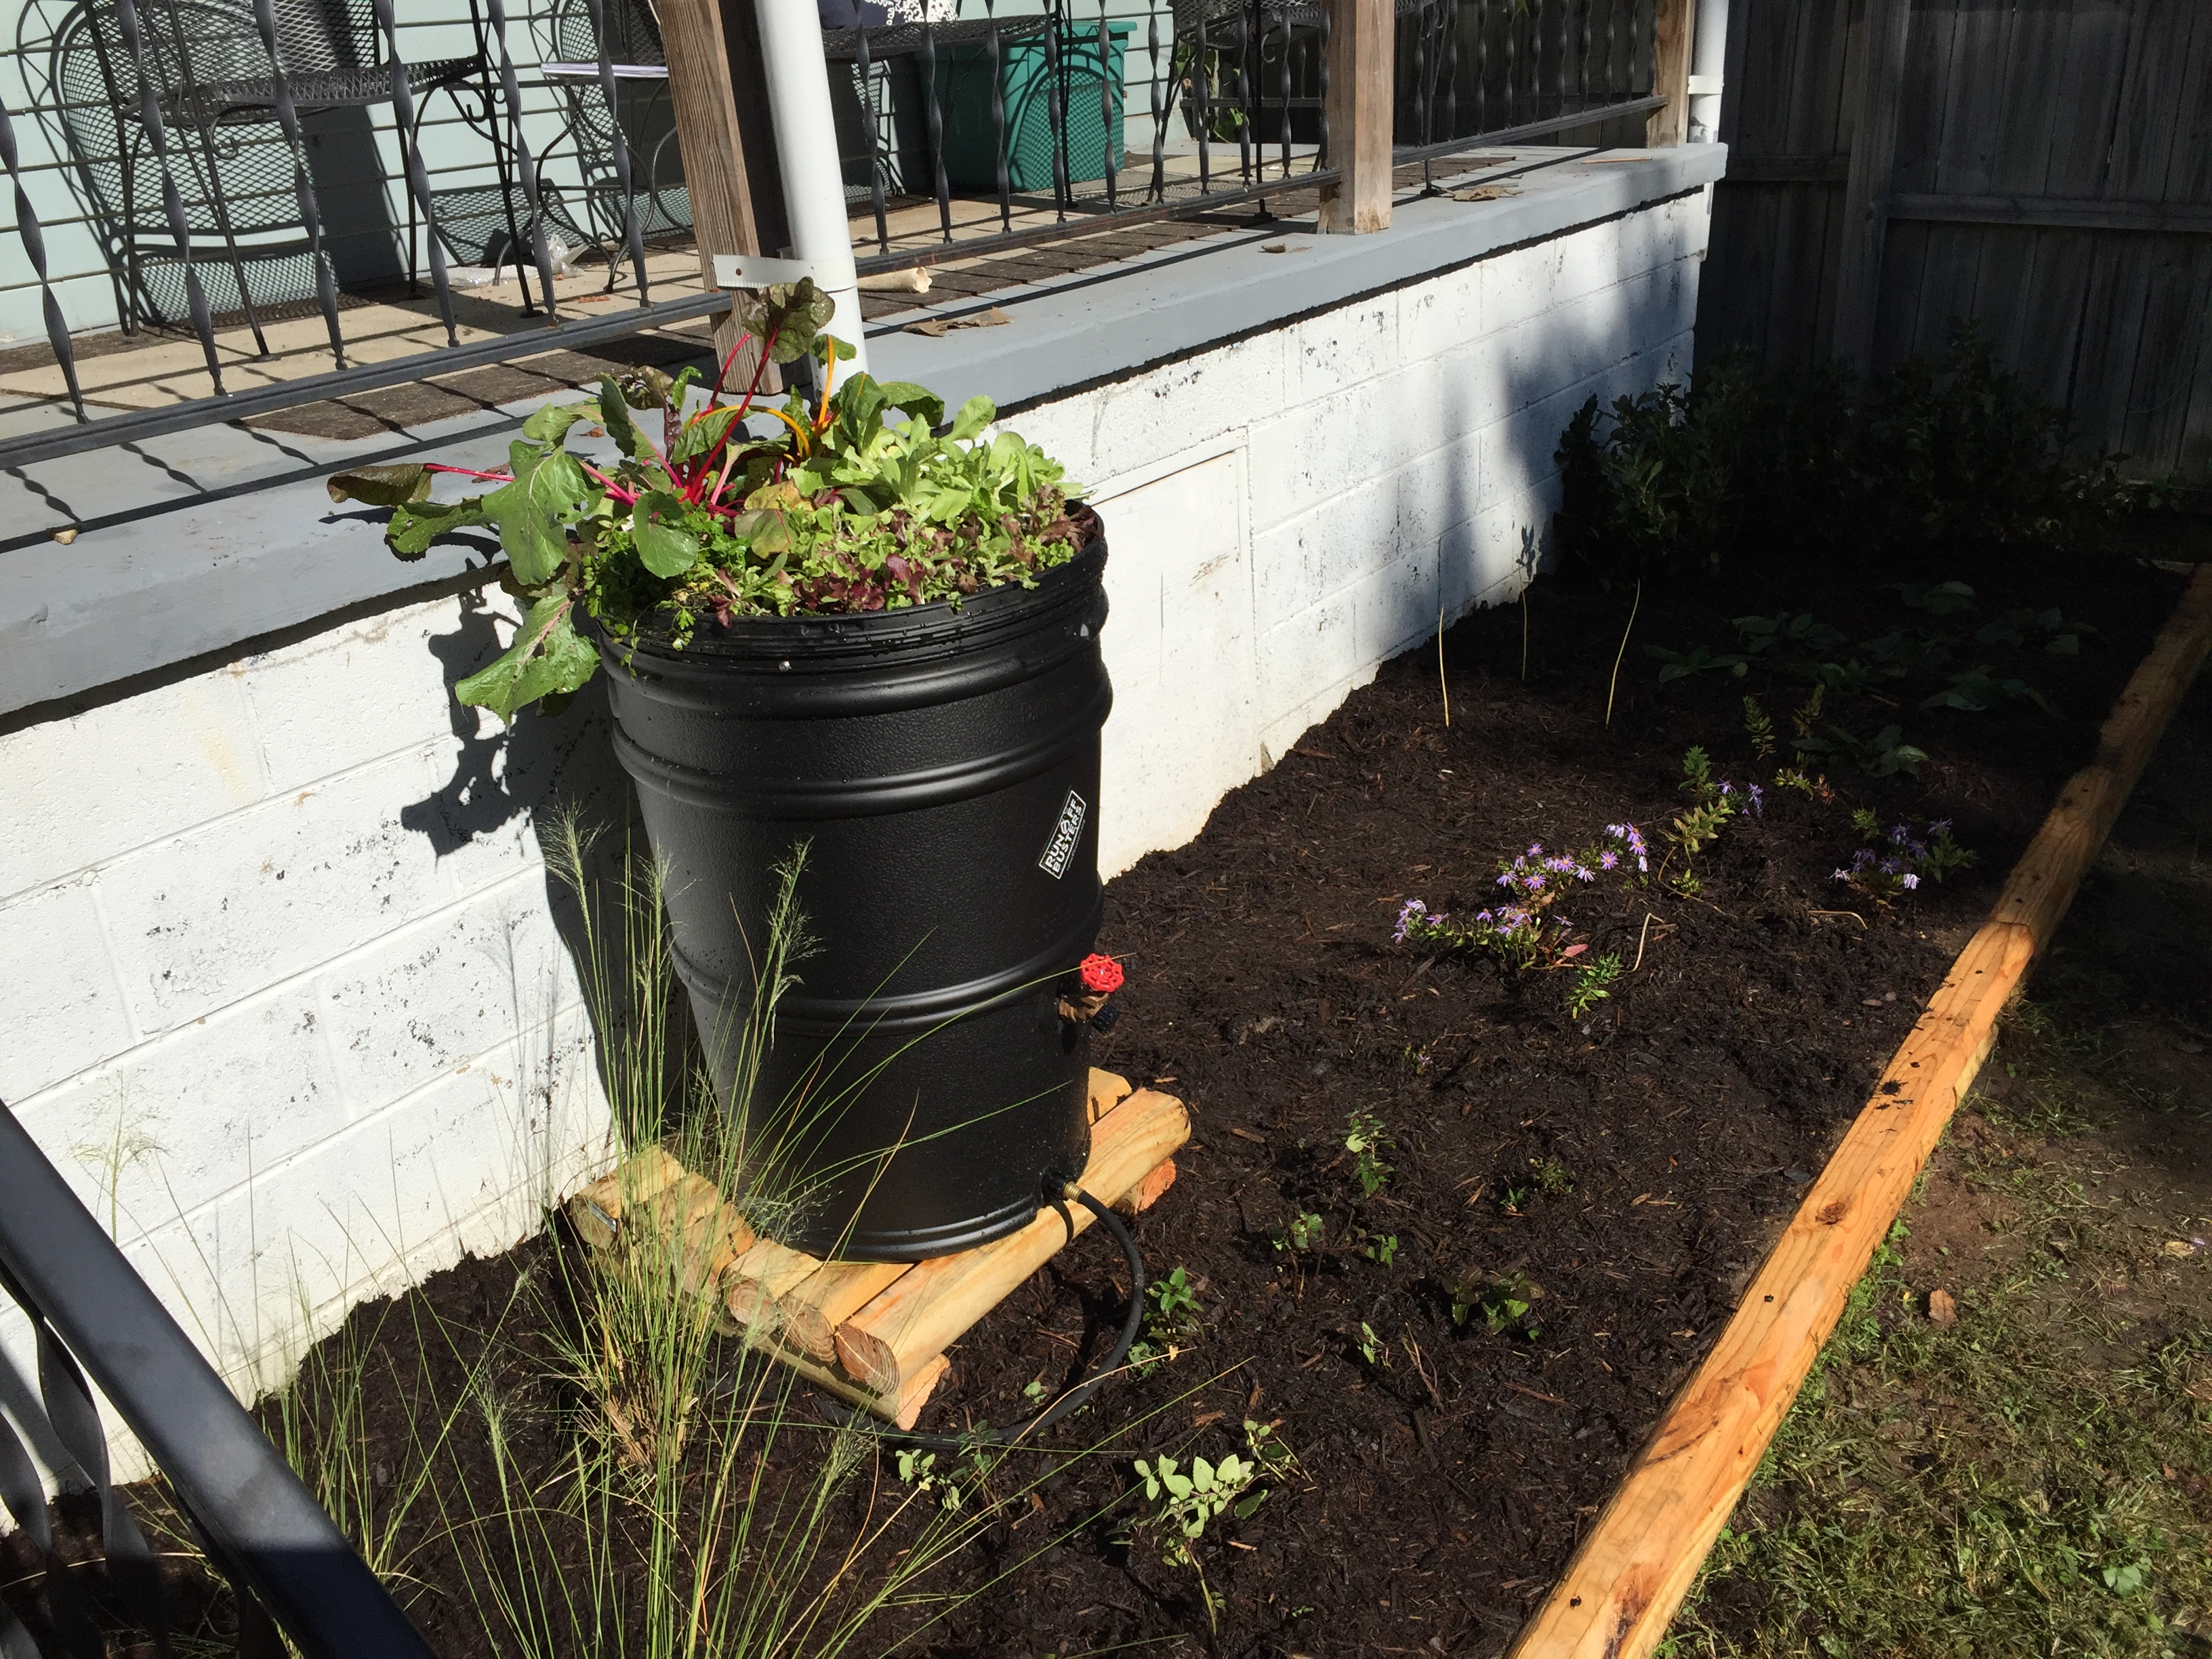 Double Duty: Consider combining a rainbarrel and an edible container